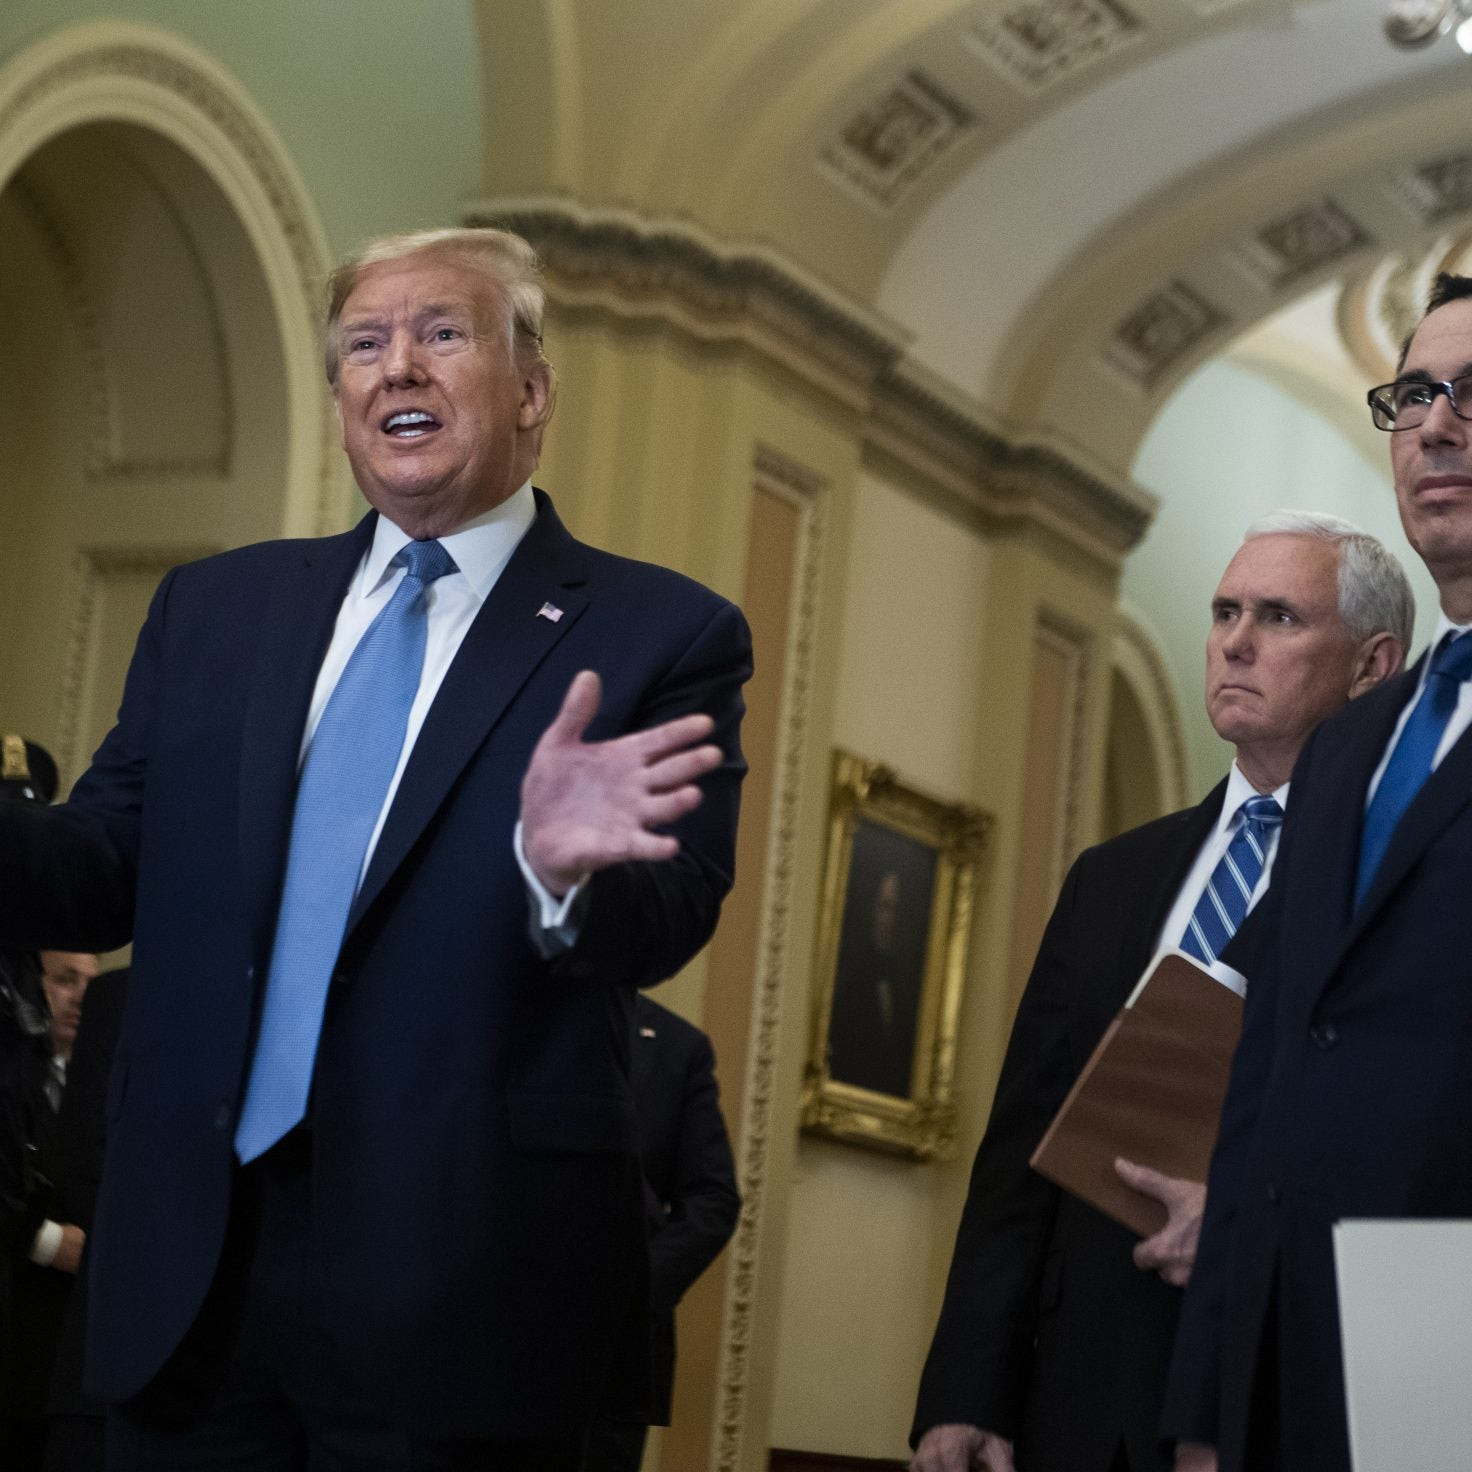 Trump Pushes To Send Checks Directly To Americans As Part Of Coronavirus Stimulus Package